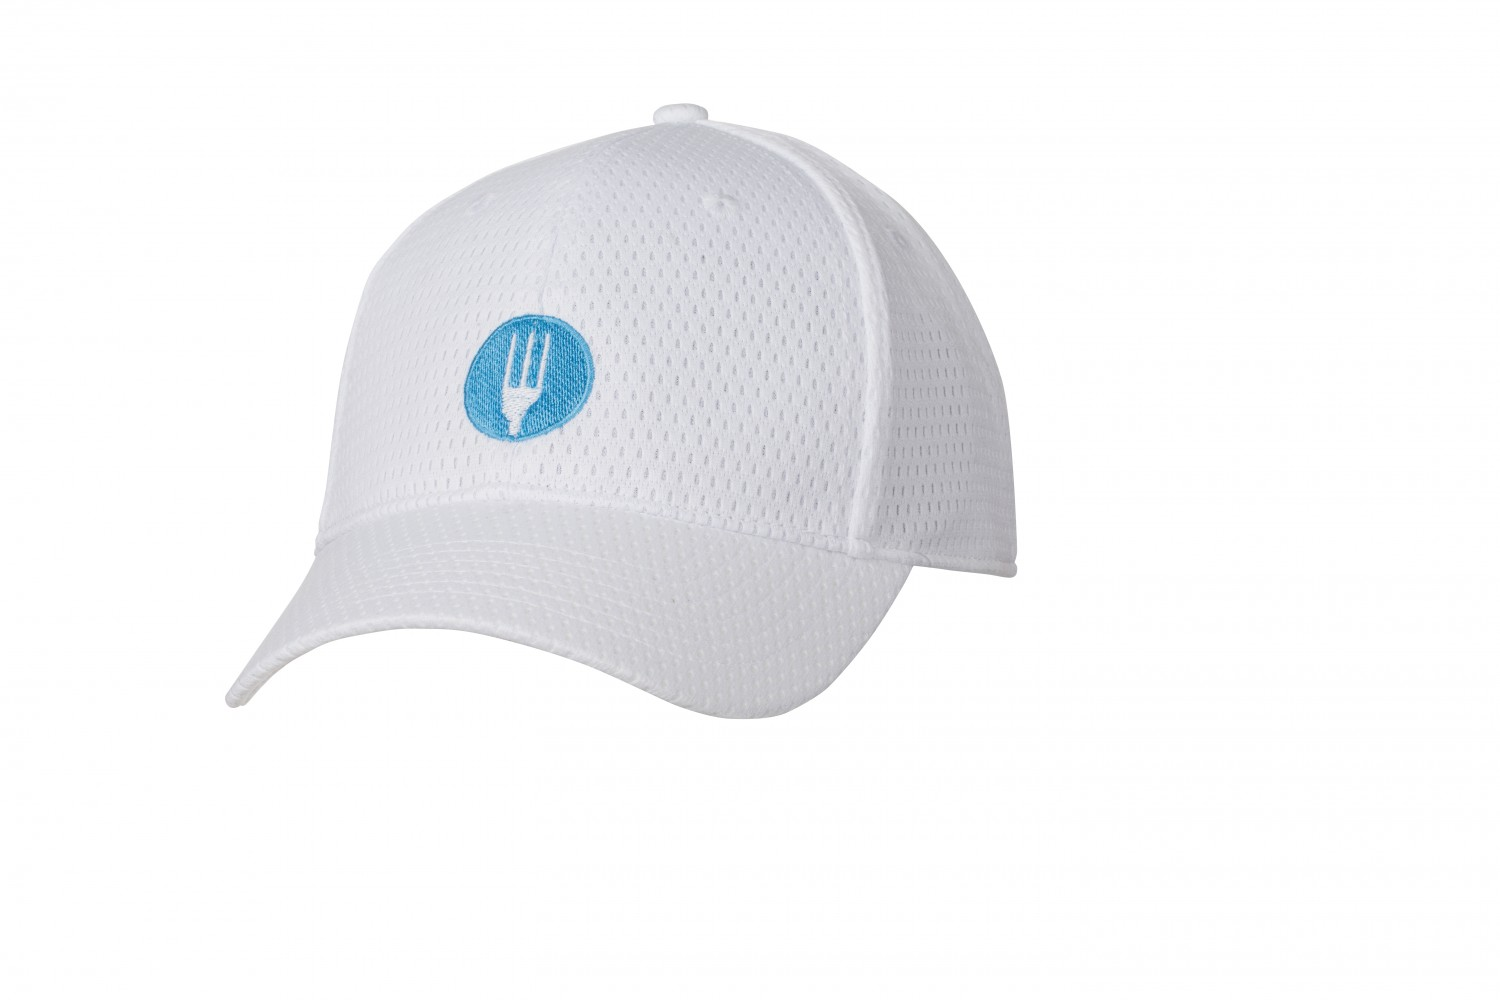 Chef Works PRCV White Cool Vent Baseball Cap with Chef Works Logo